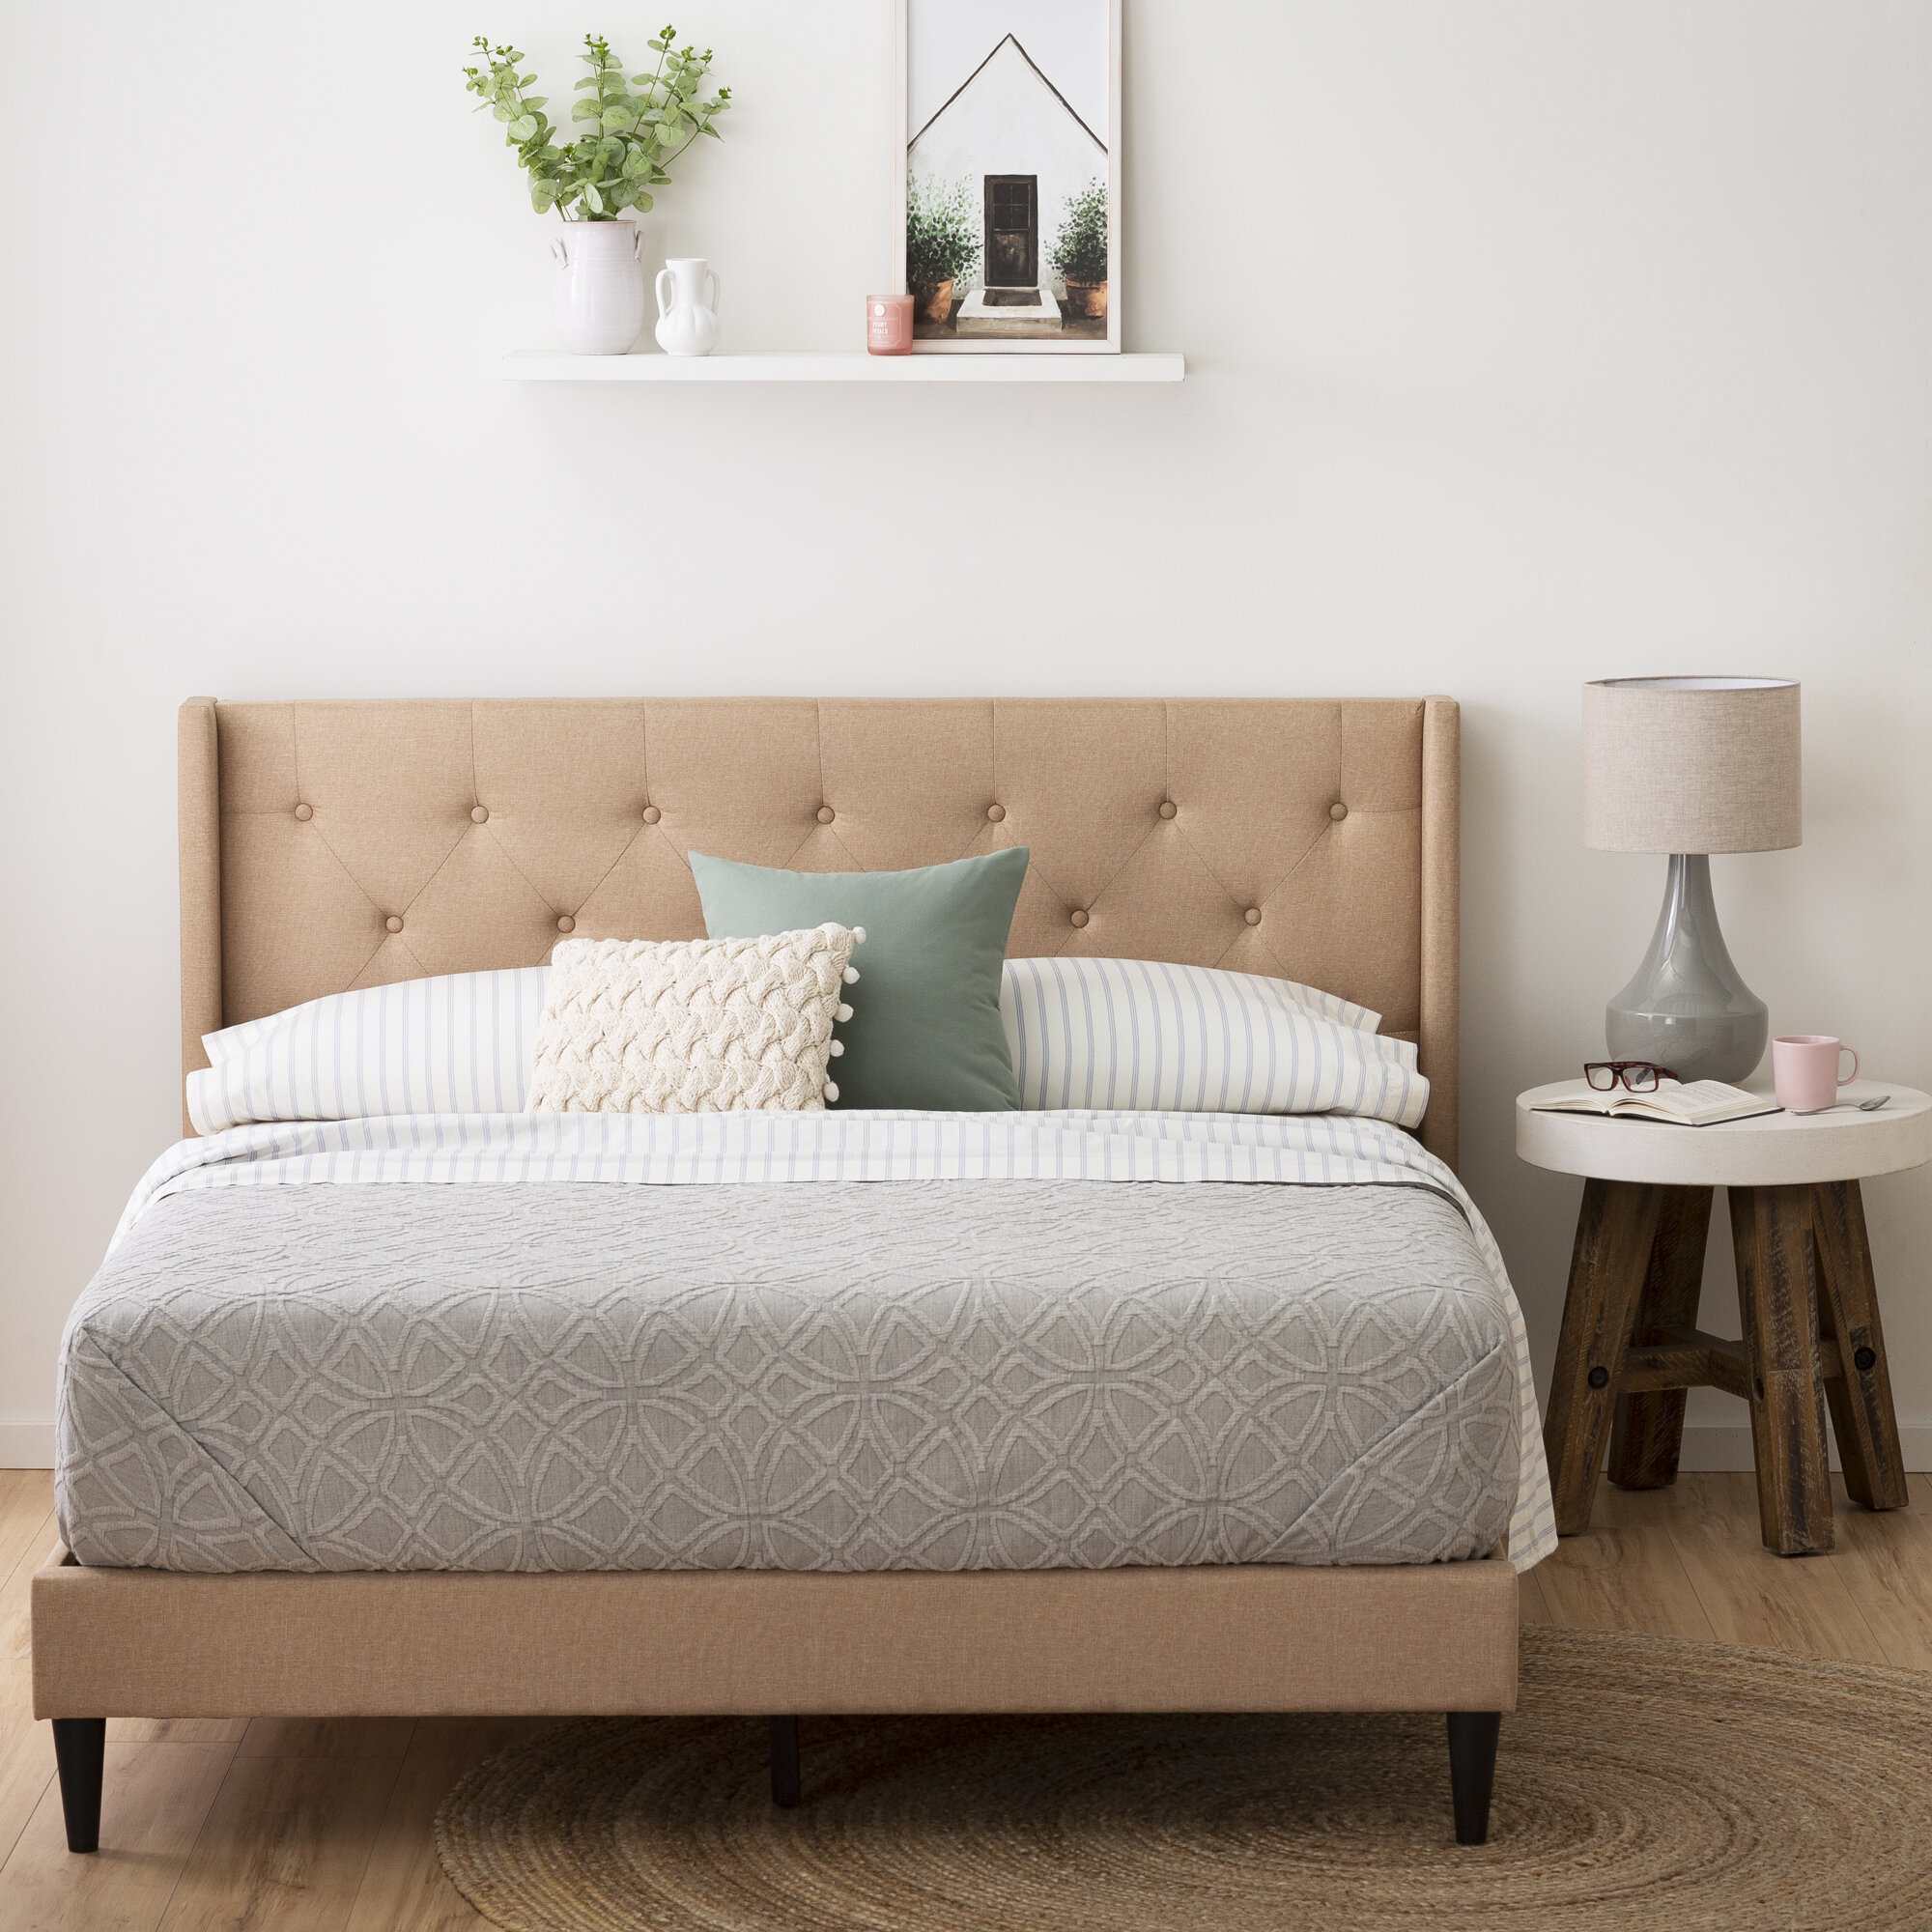 Picture of: King Sized Beds Wayfair